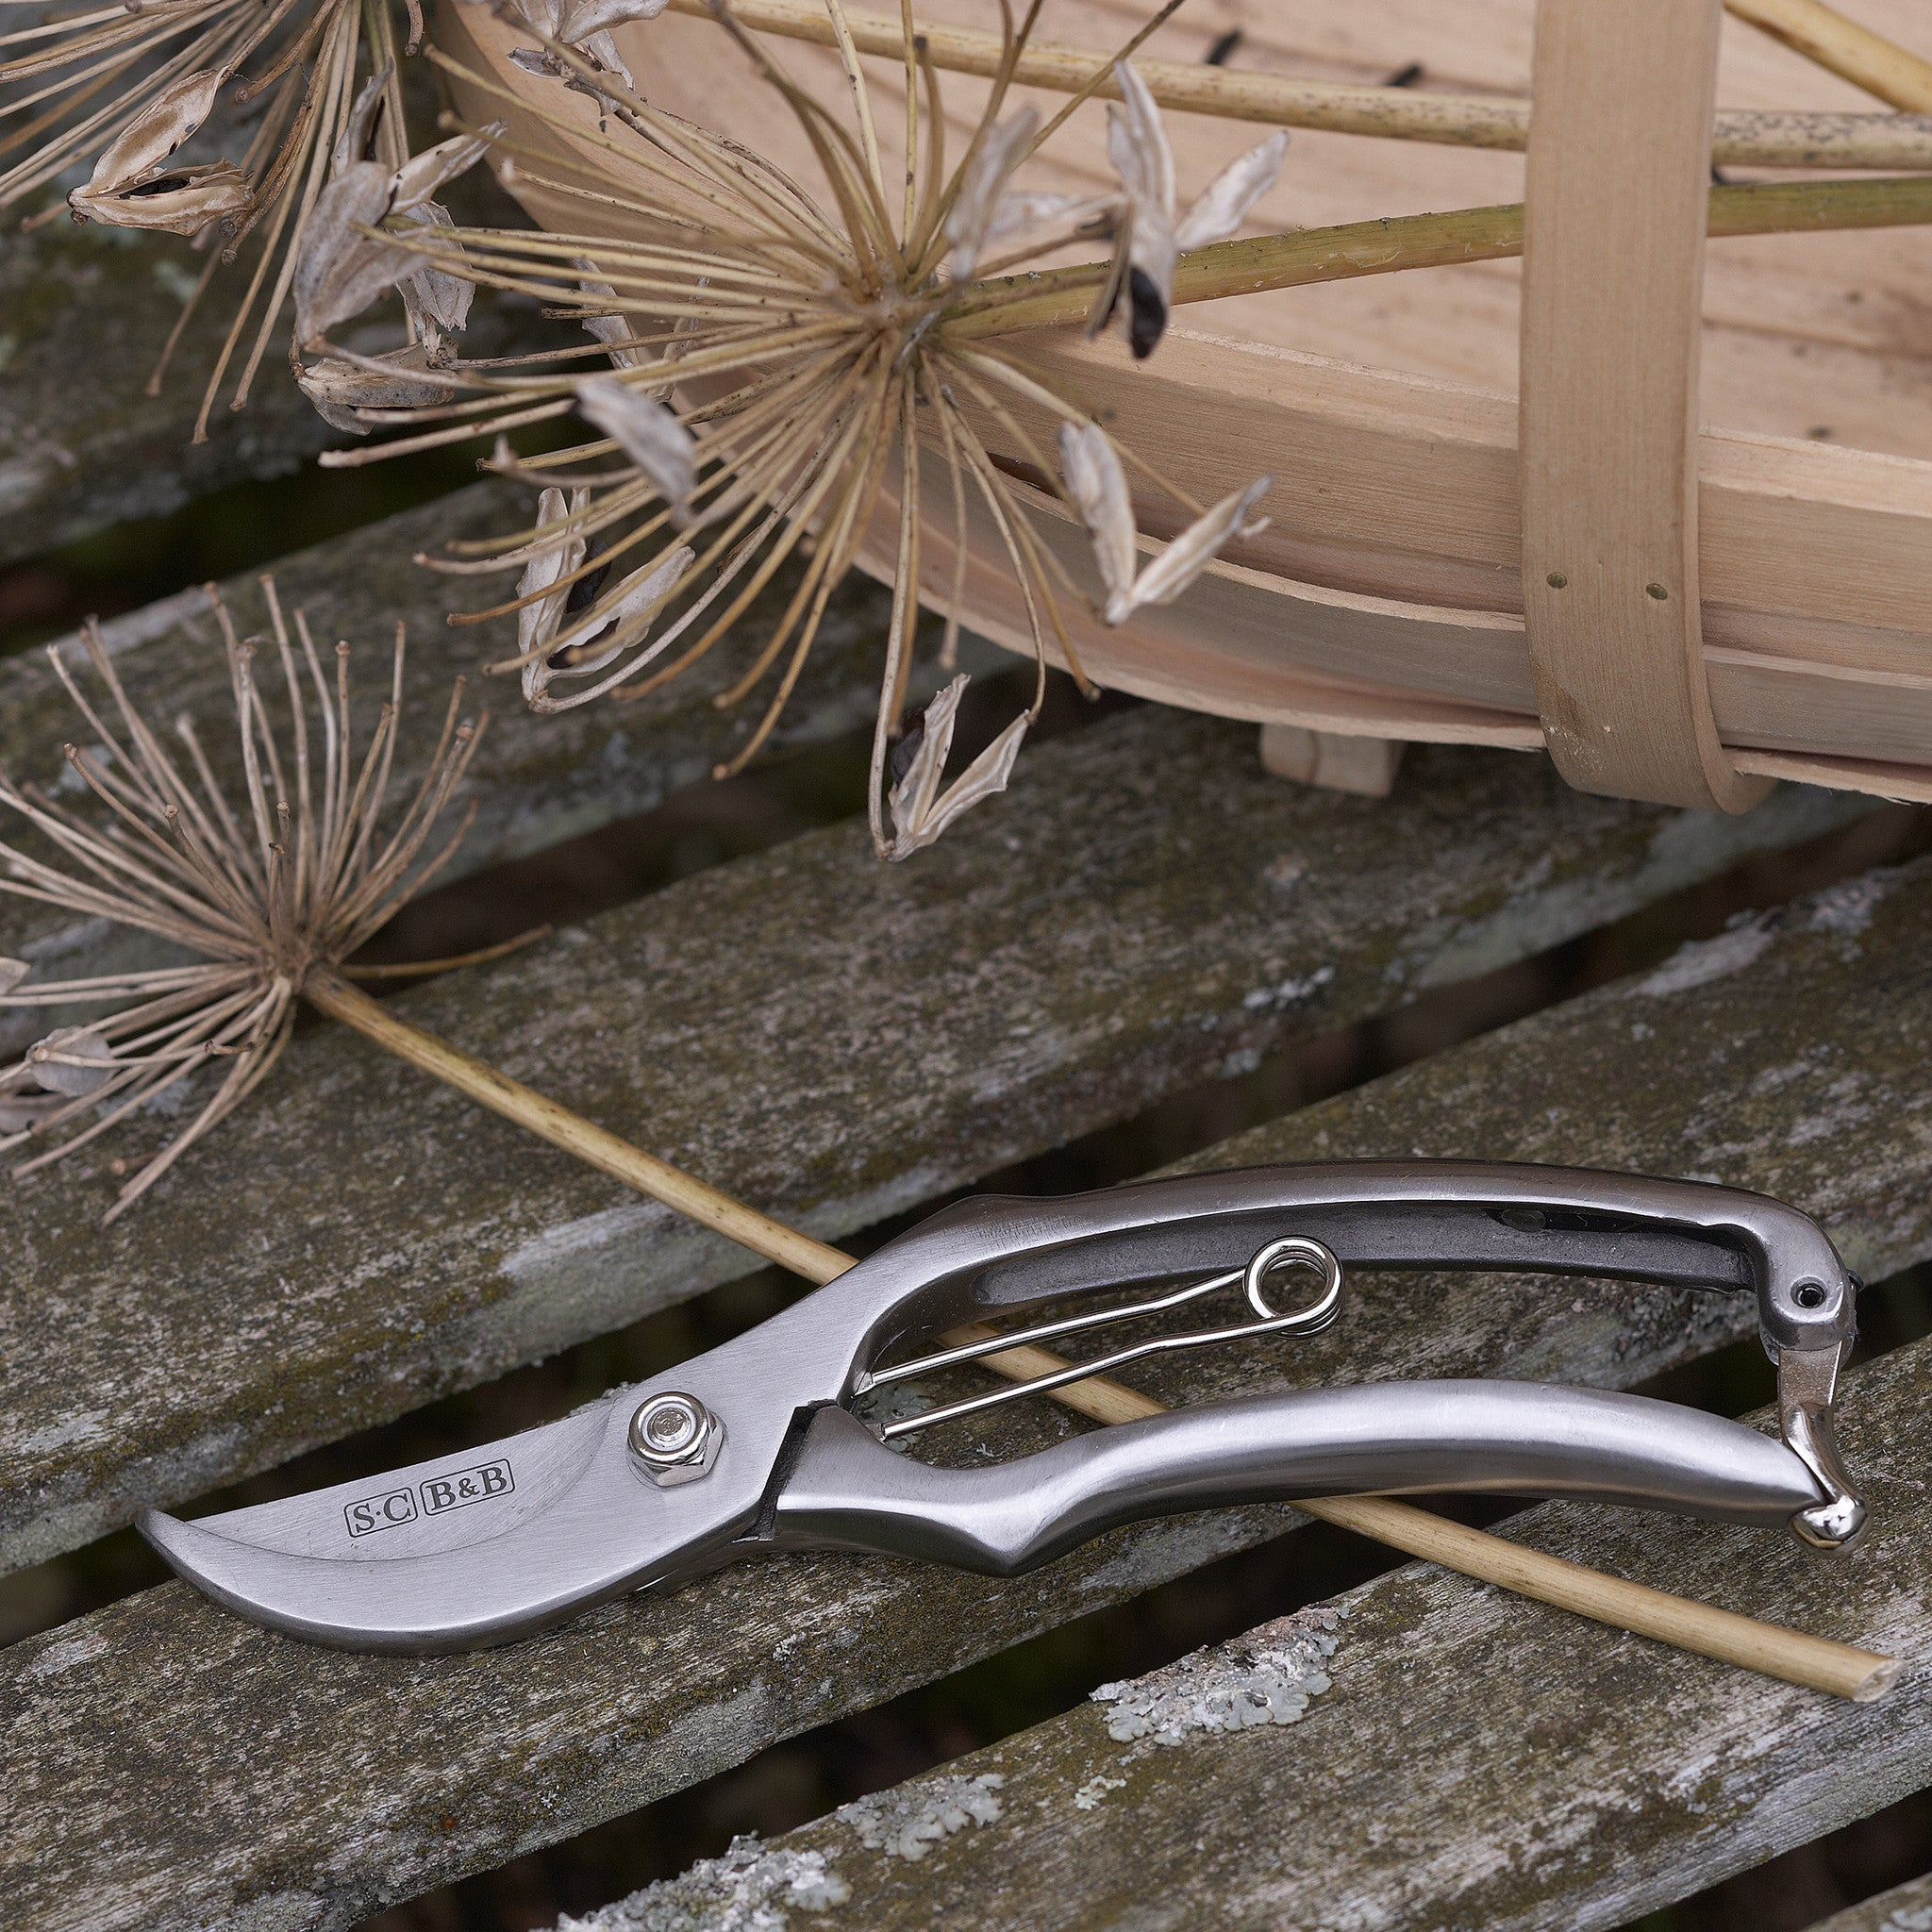 Secateurs - Gift Boxed - Sophie Conran - The Potting Shed Garden Tools